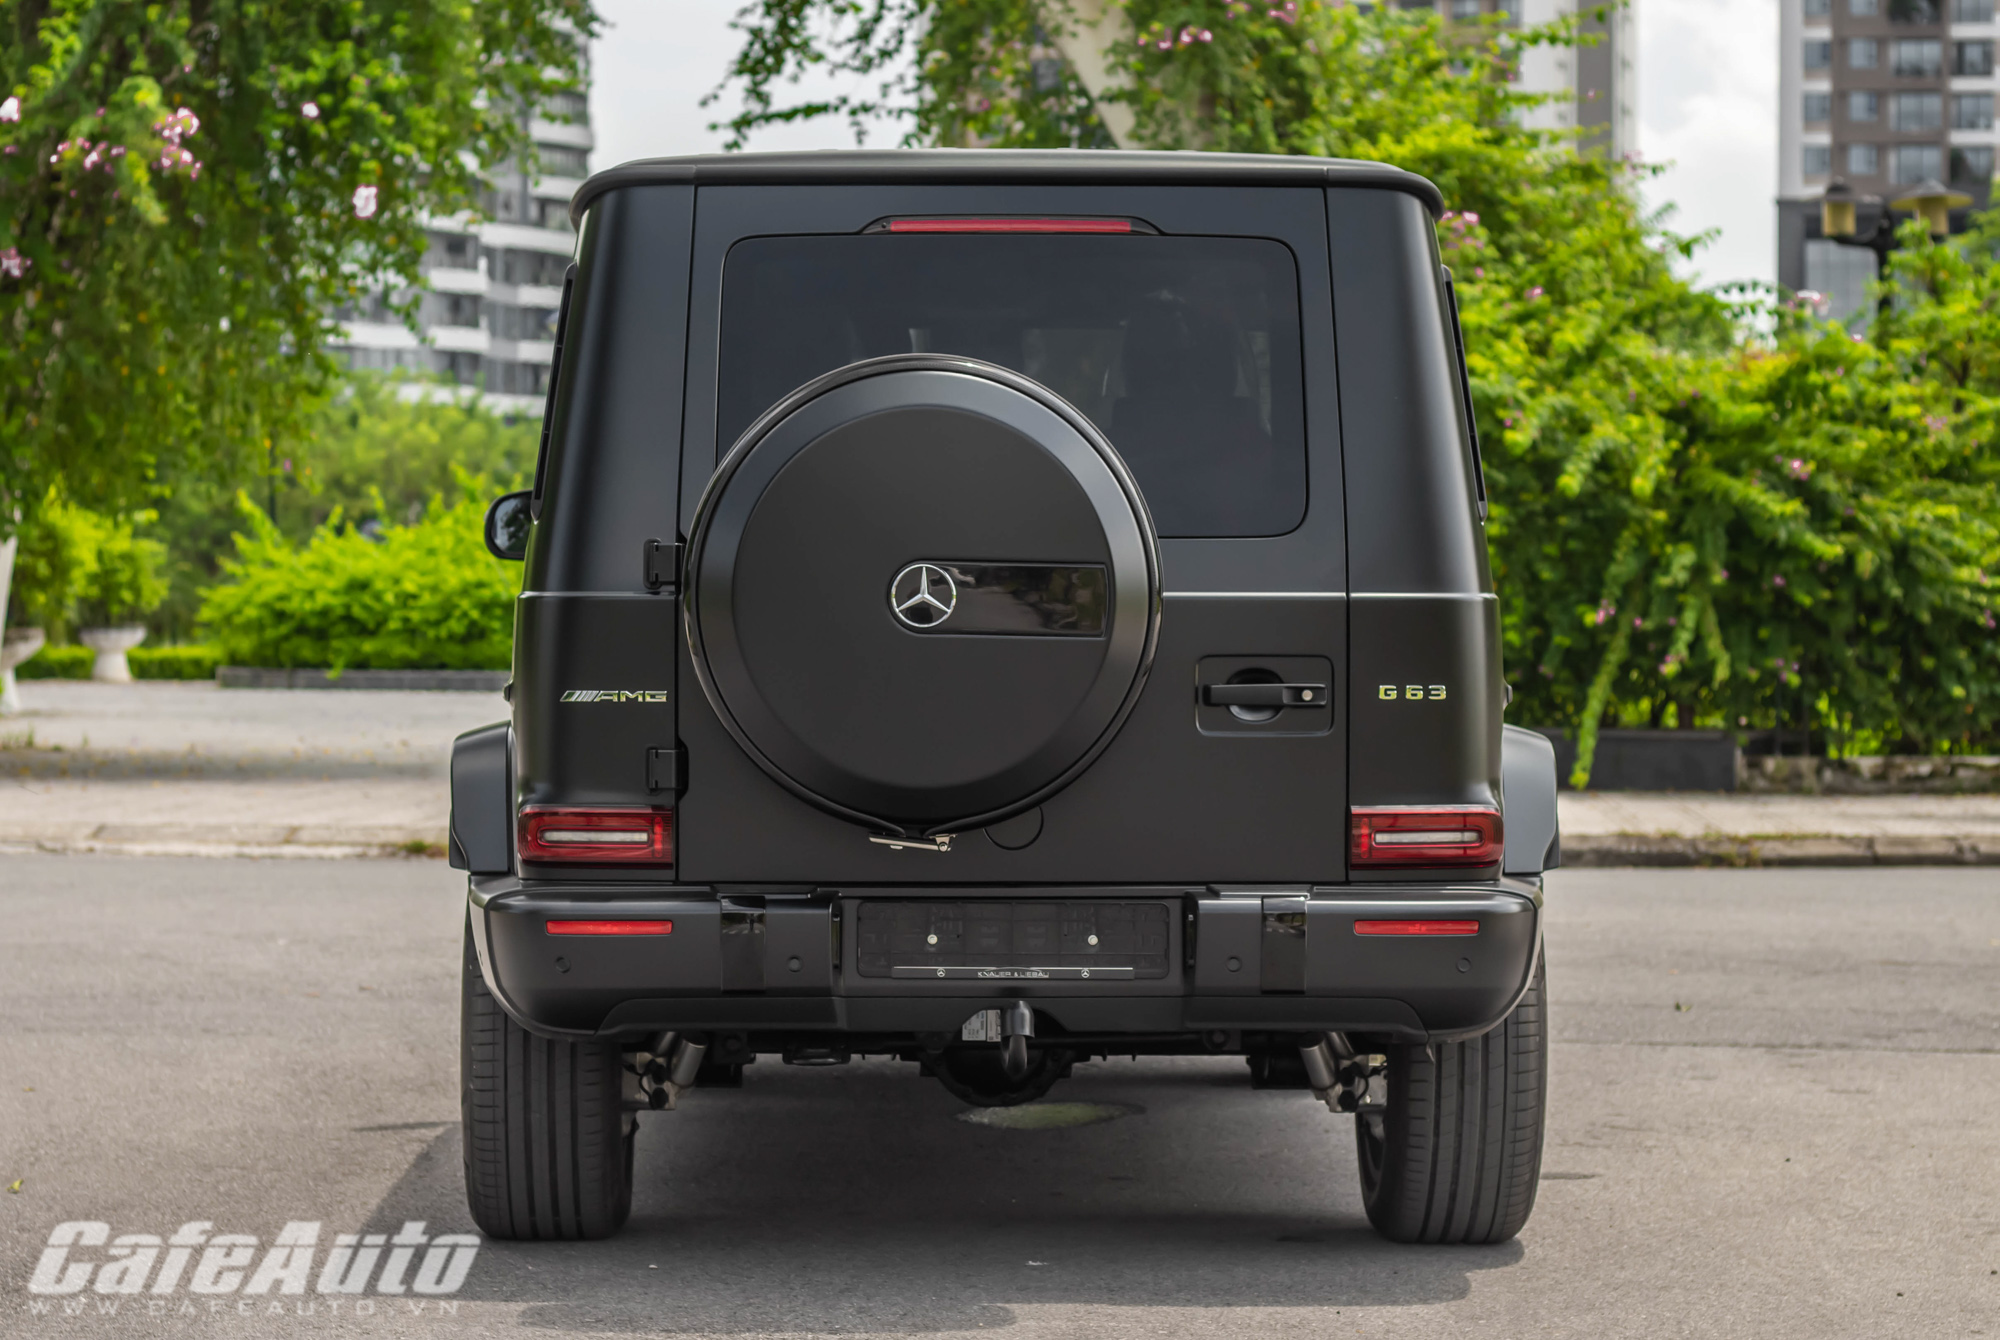 MercedesG63TrailPackage-cafeautovn-8